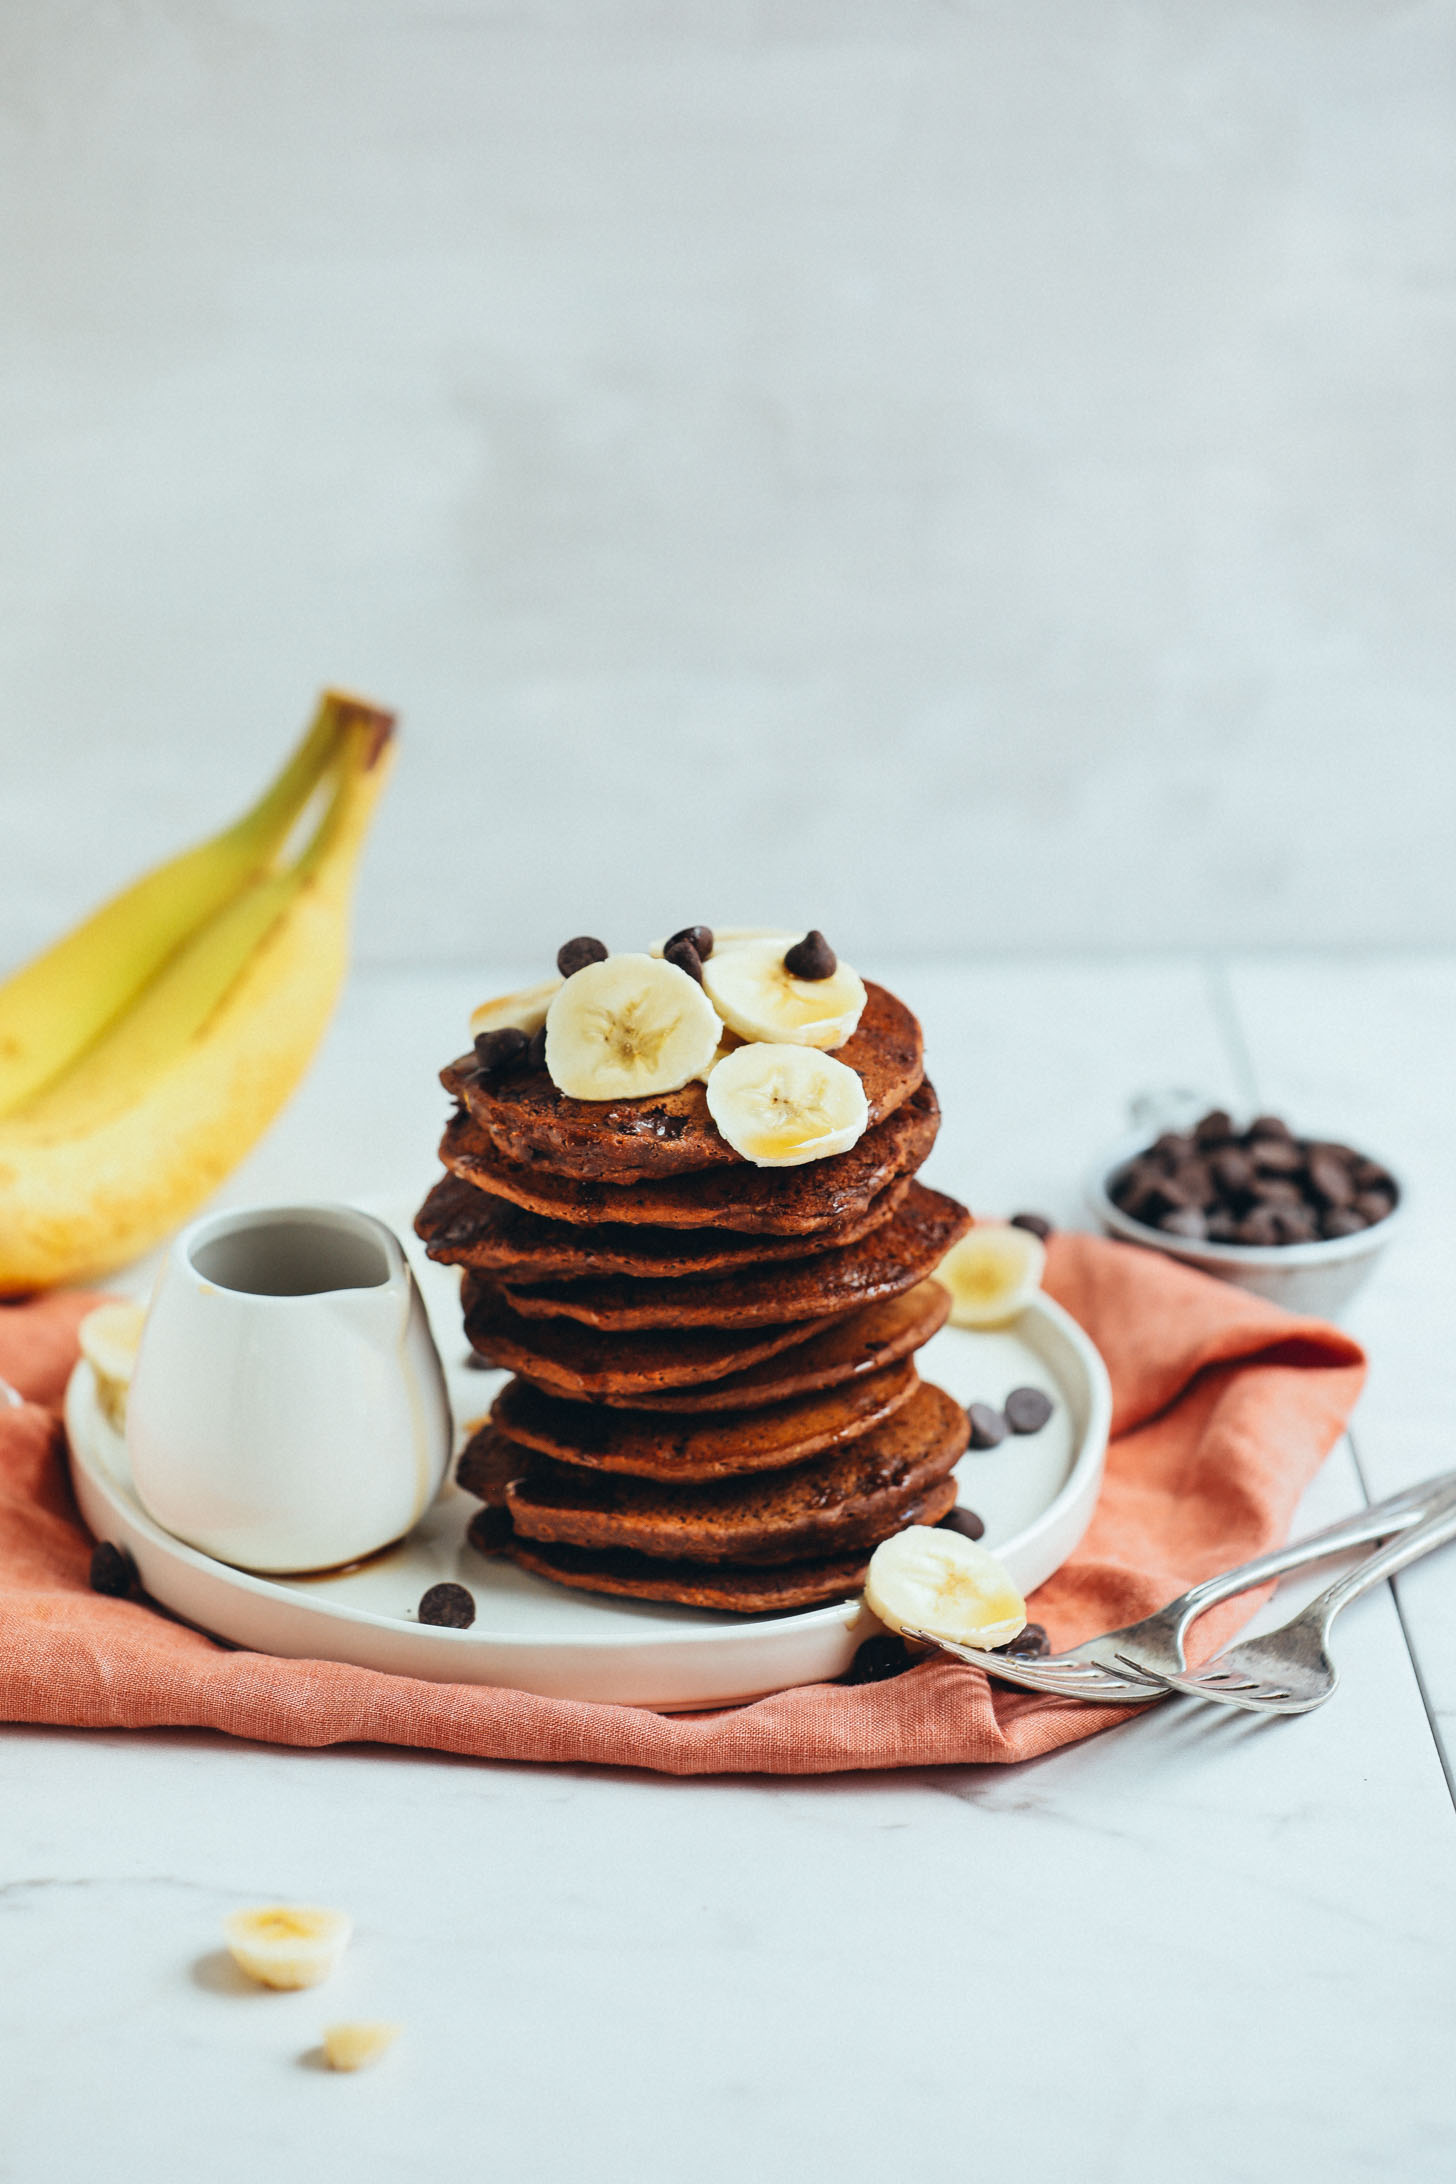 Stack of Vegan Chocolate Chip Pancakes with banana and a side of syrup